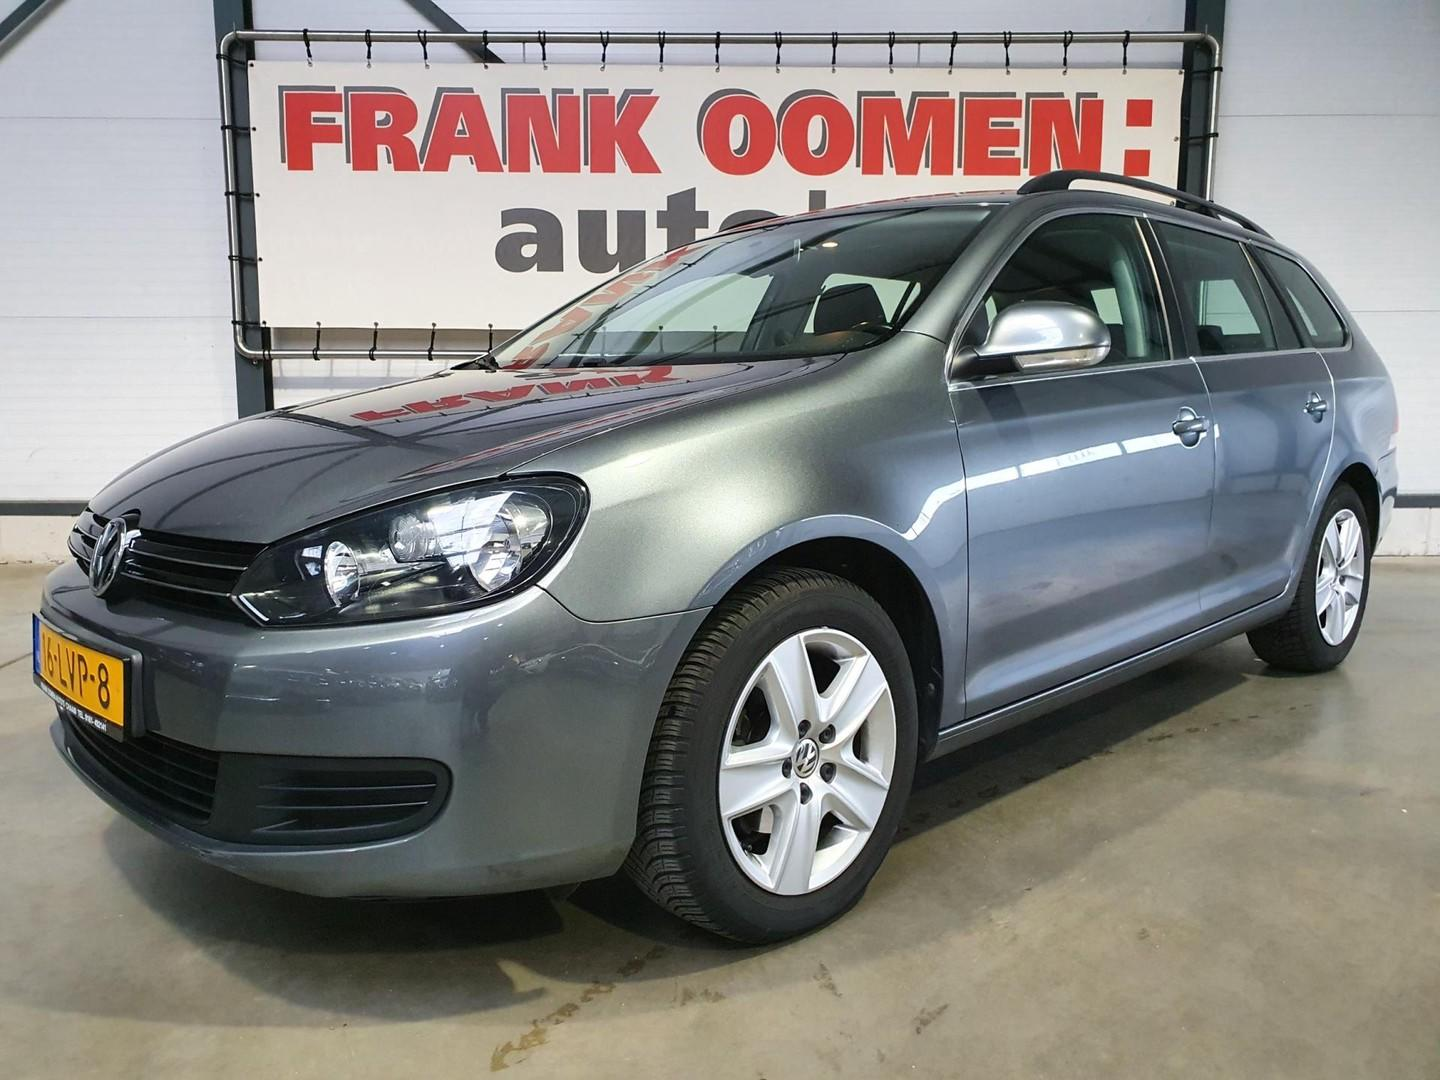 Volkswagen Golf Variant 1.2 tsi 105pk comfortline + nap/navi/clima/cruise control/bluetooth/trekhaak